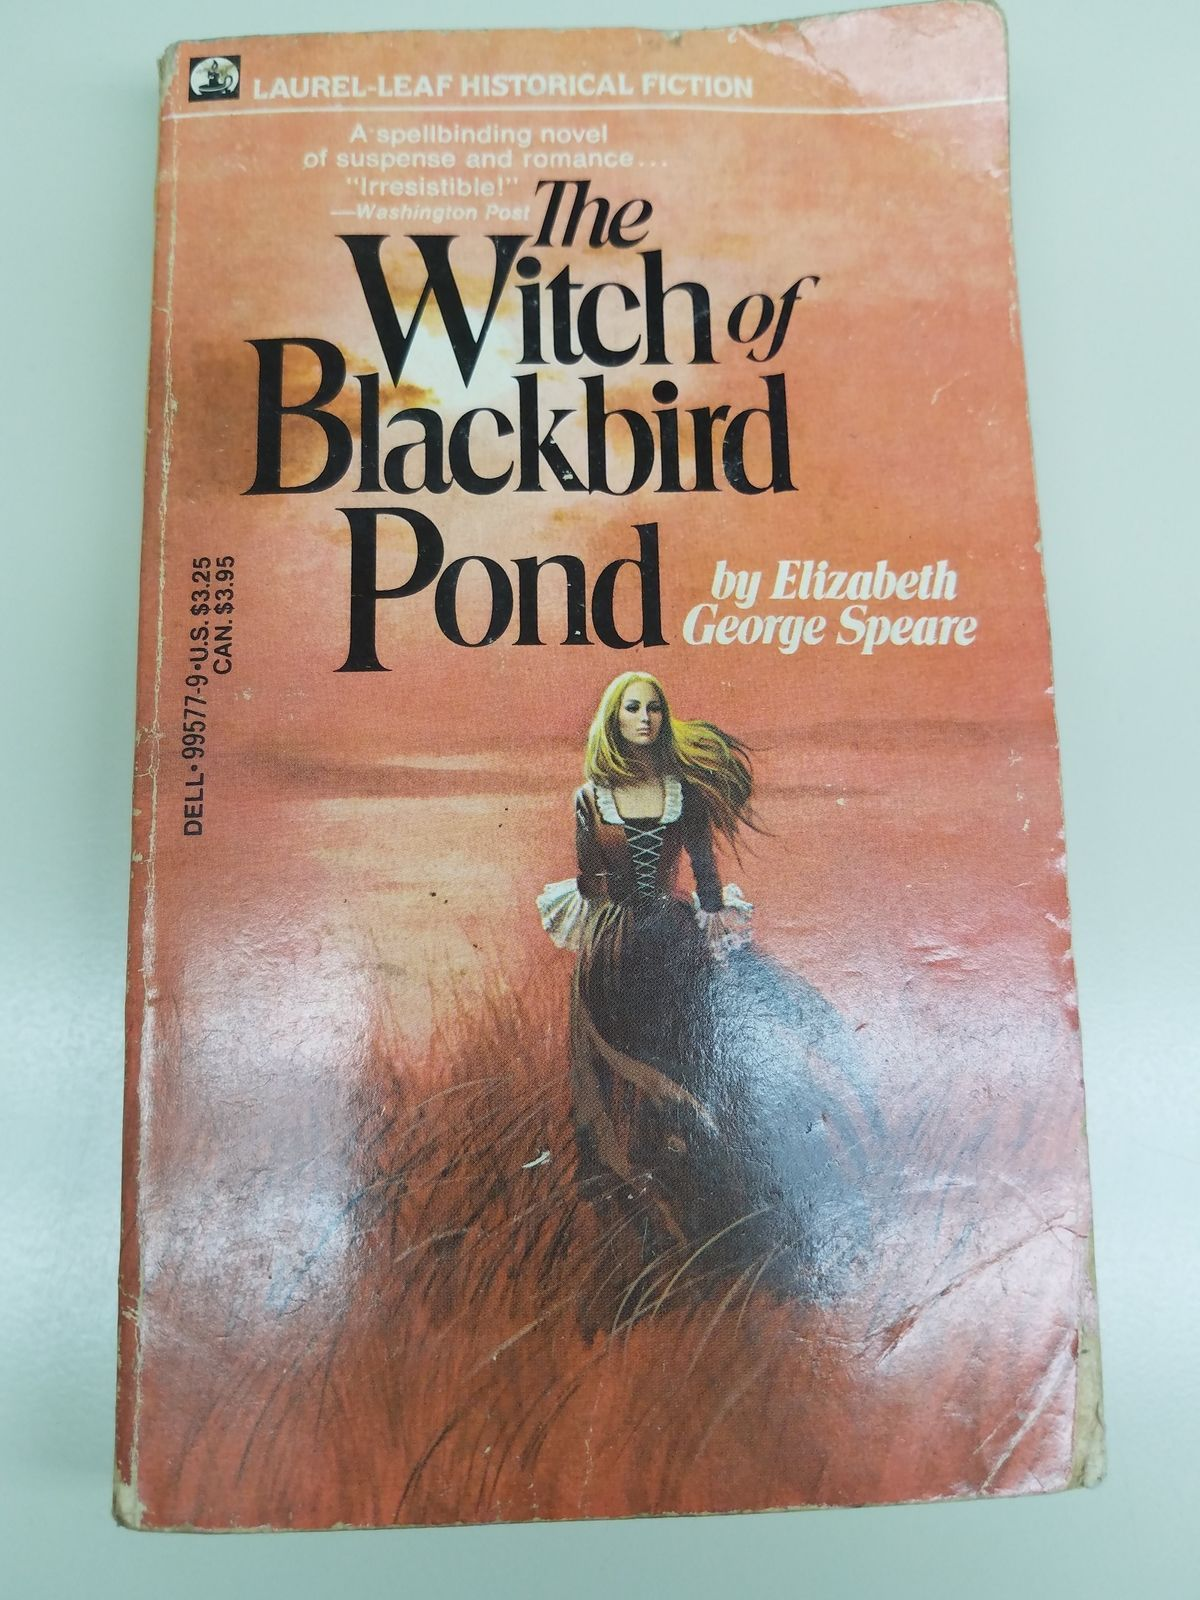 a literary analysis of the witch of blackbird pond by elizabeth george spear